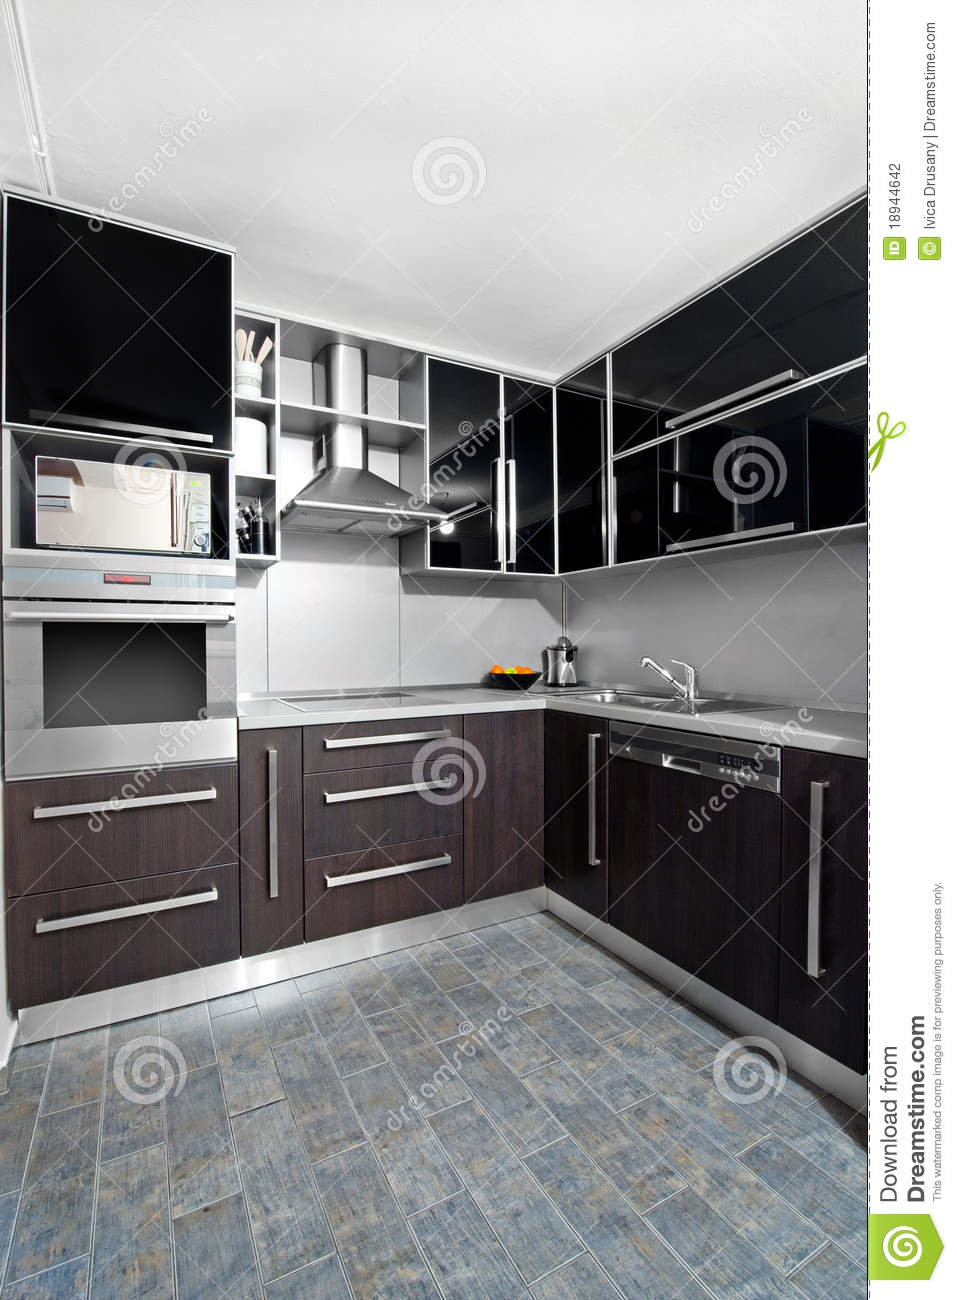 cuisine moderne dans des couleurs de noir et de wenge photo stock image du d coration cuisine. Black Bedroom Furniture Sets. Home Design Ideas